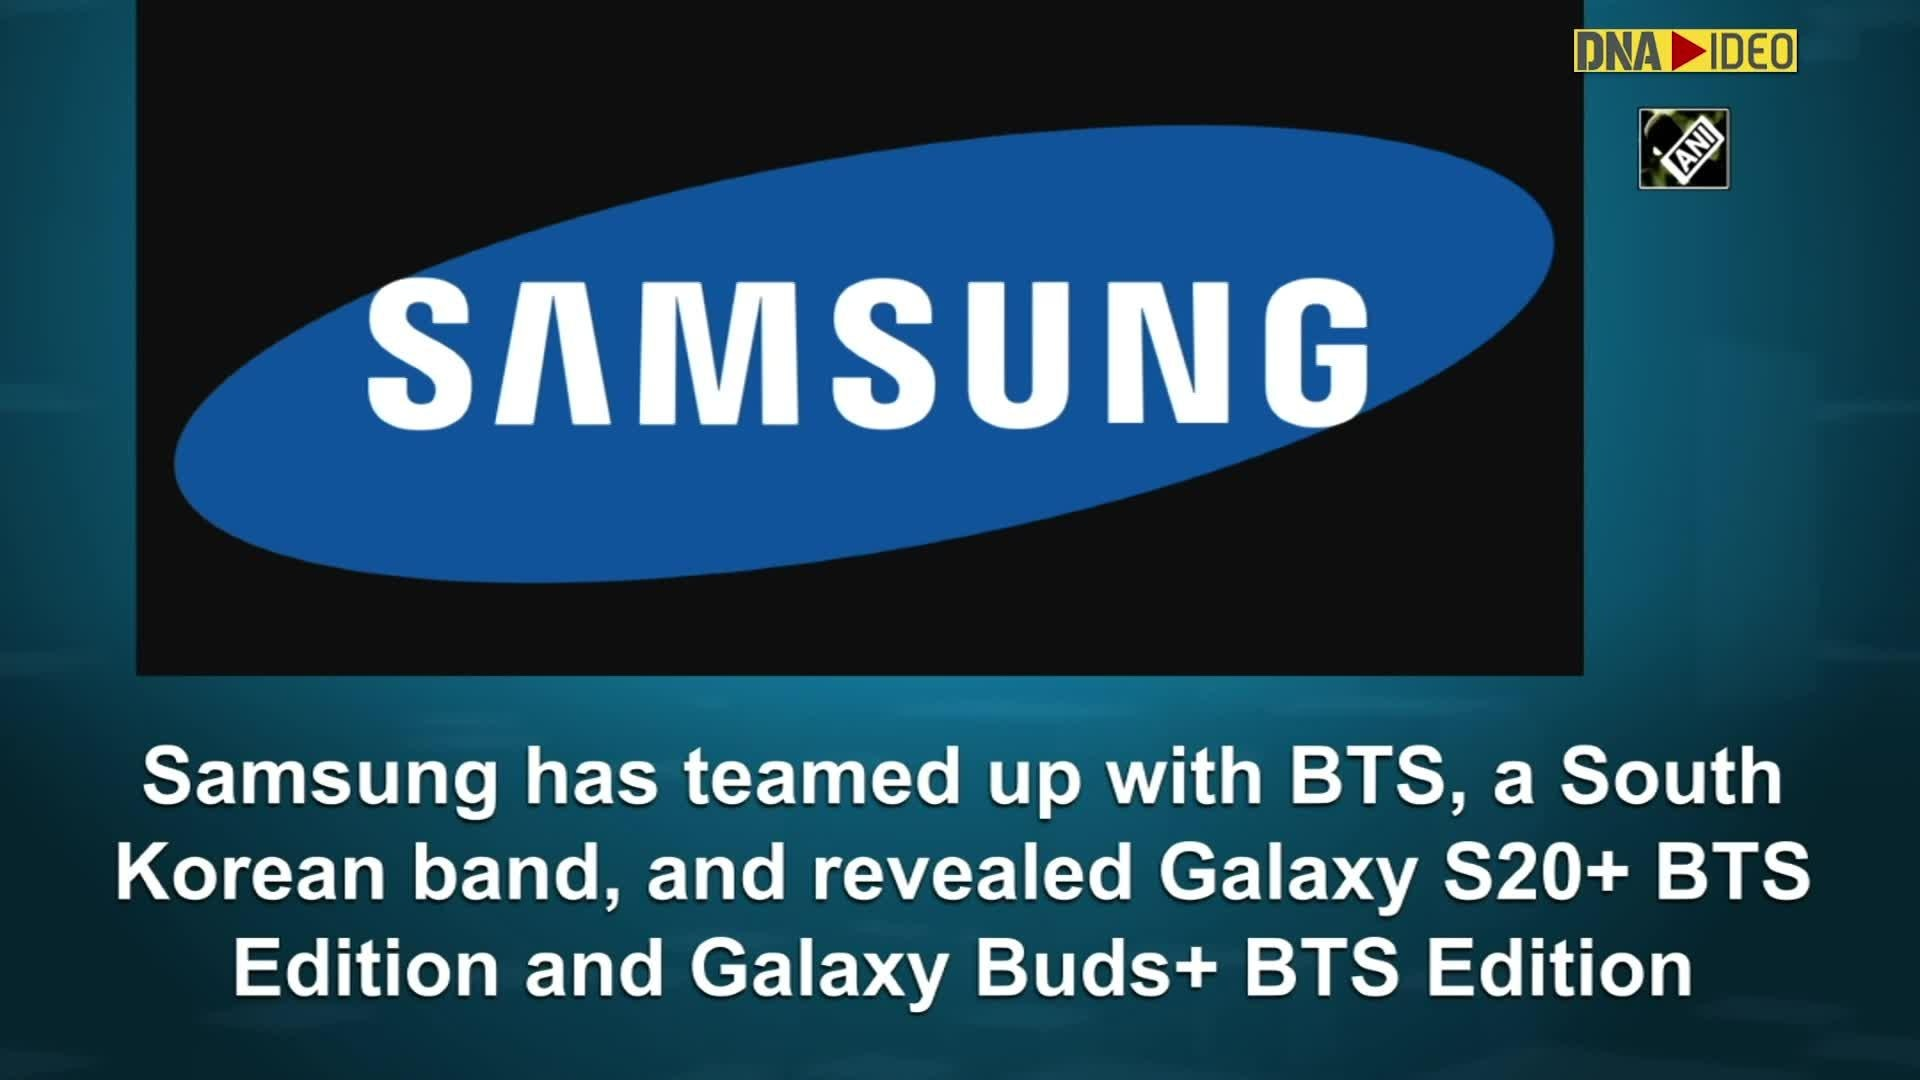 Samsung Teams Up With Bts Reveals Special Edition Galaxy S20 Galaxy Buds